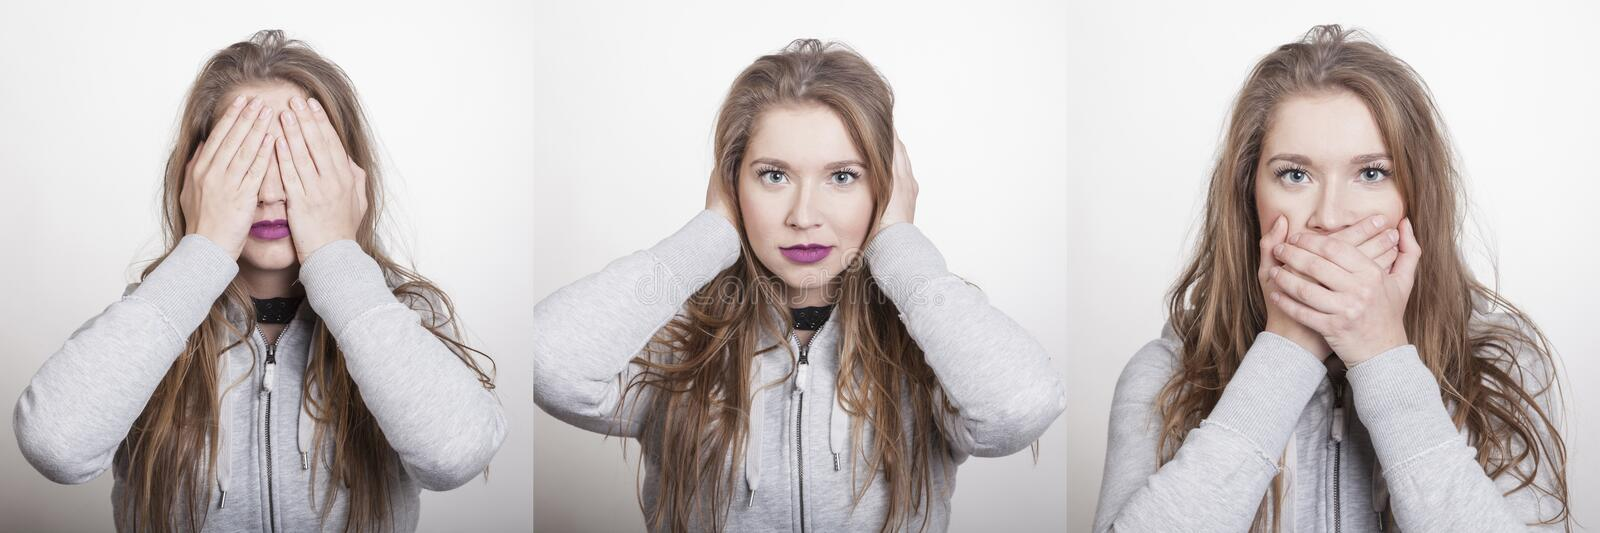 Blonde woman shows paraphrases of the three chimps of confucius showing no see hear speak royalty free stock images